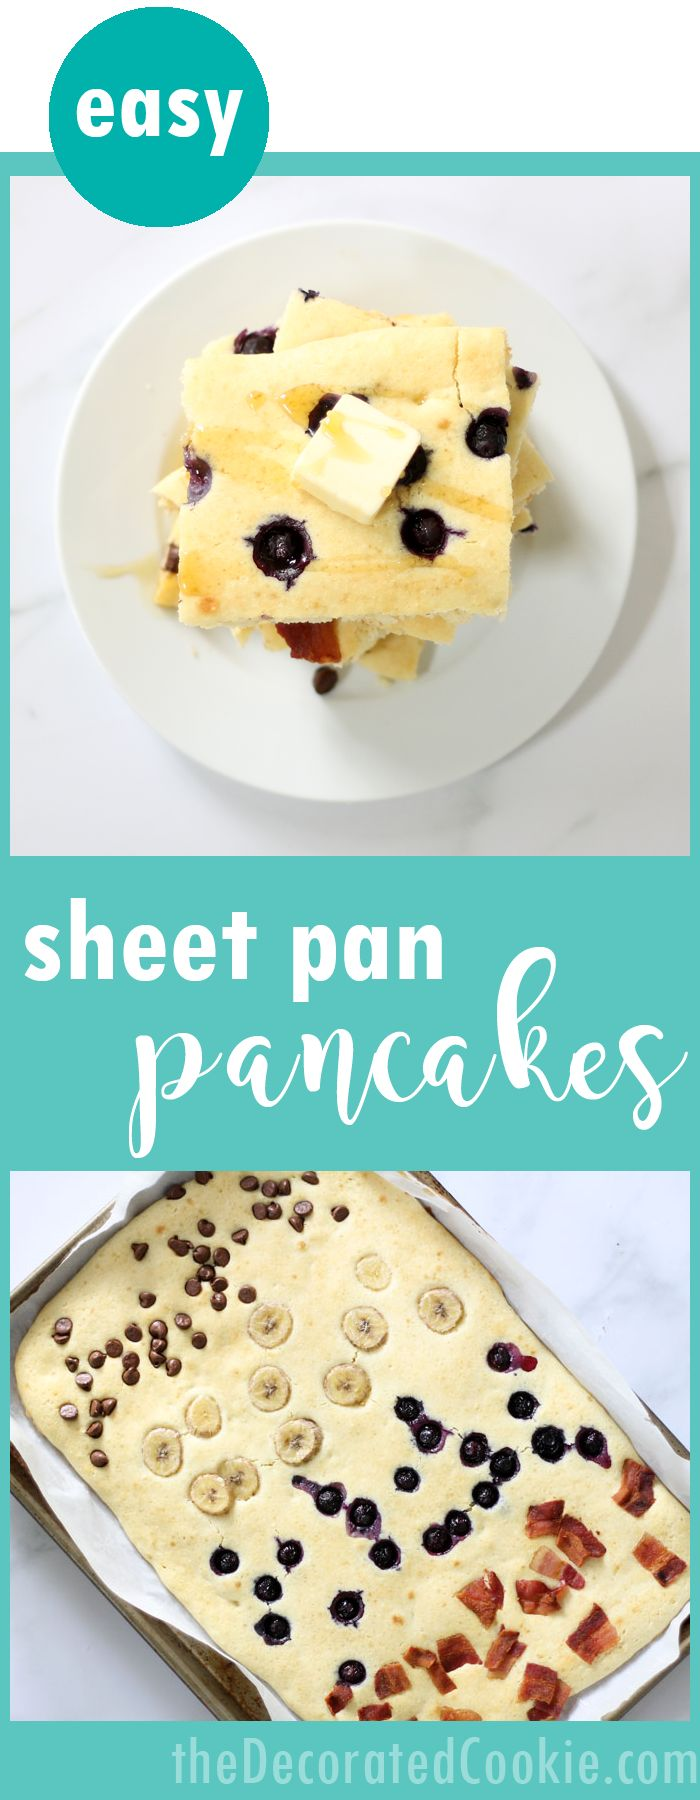 EASY sheet pan pancakes -- bake your pancakes all at once! The best, easy breakfast idea for a crowd, for holiday breakfasts, or freeze for weekday breakfast ideas. Mix and match toppings.